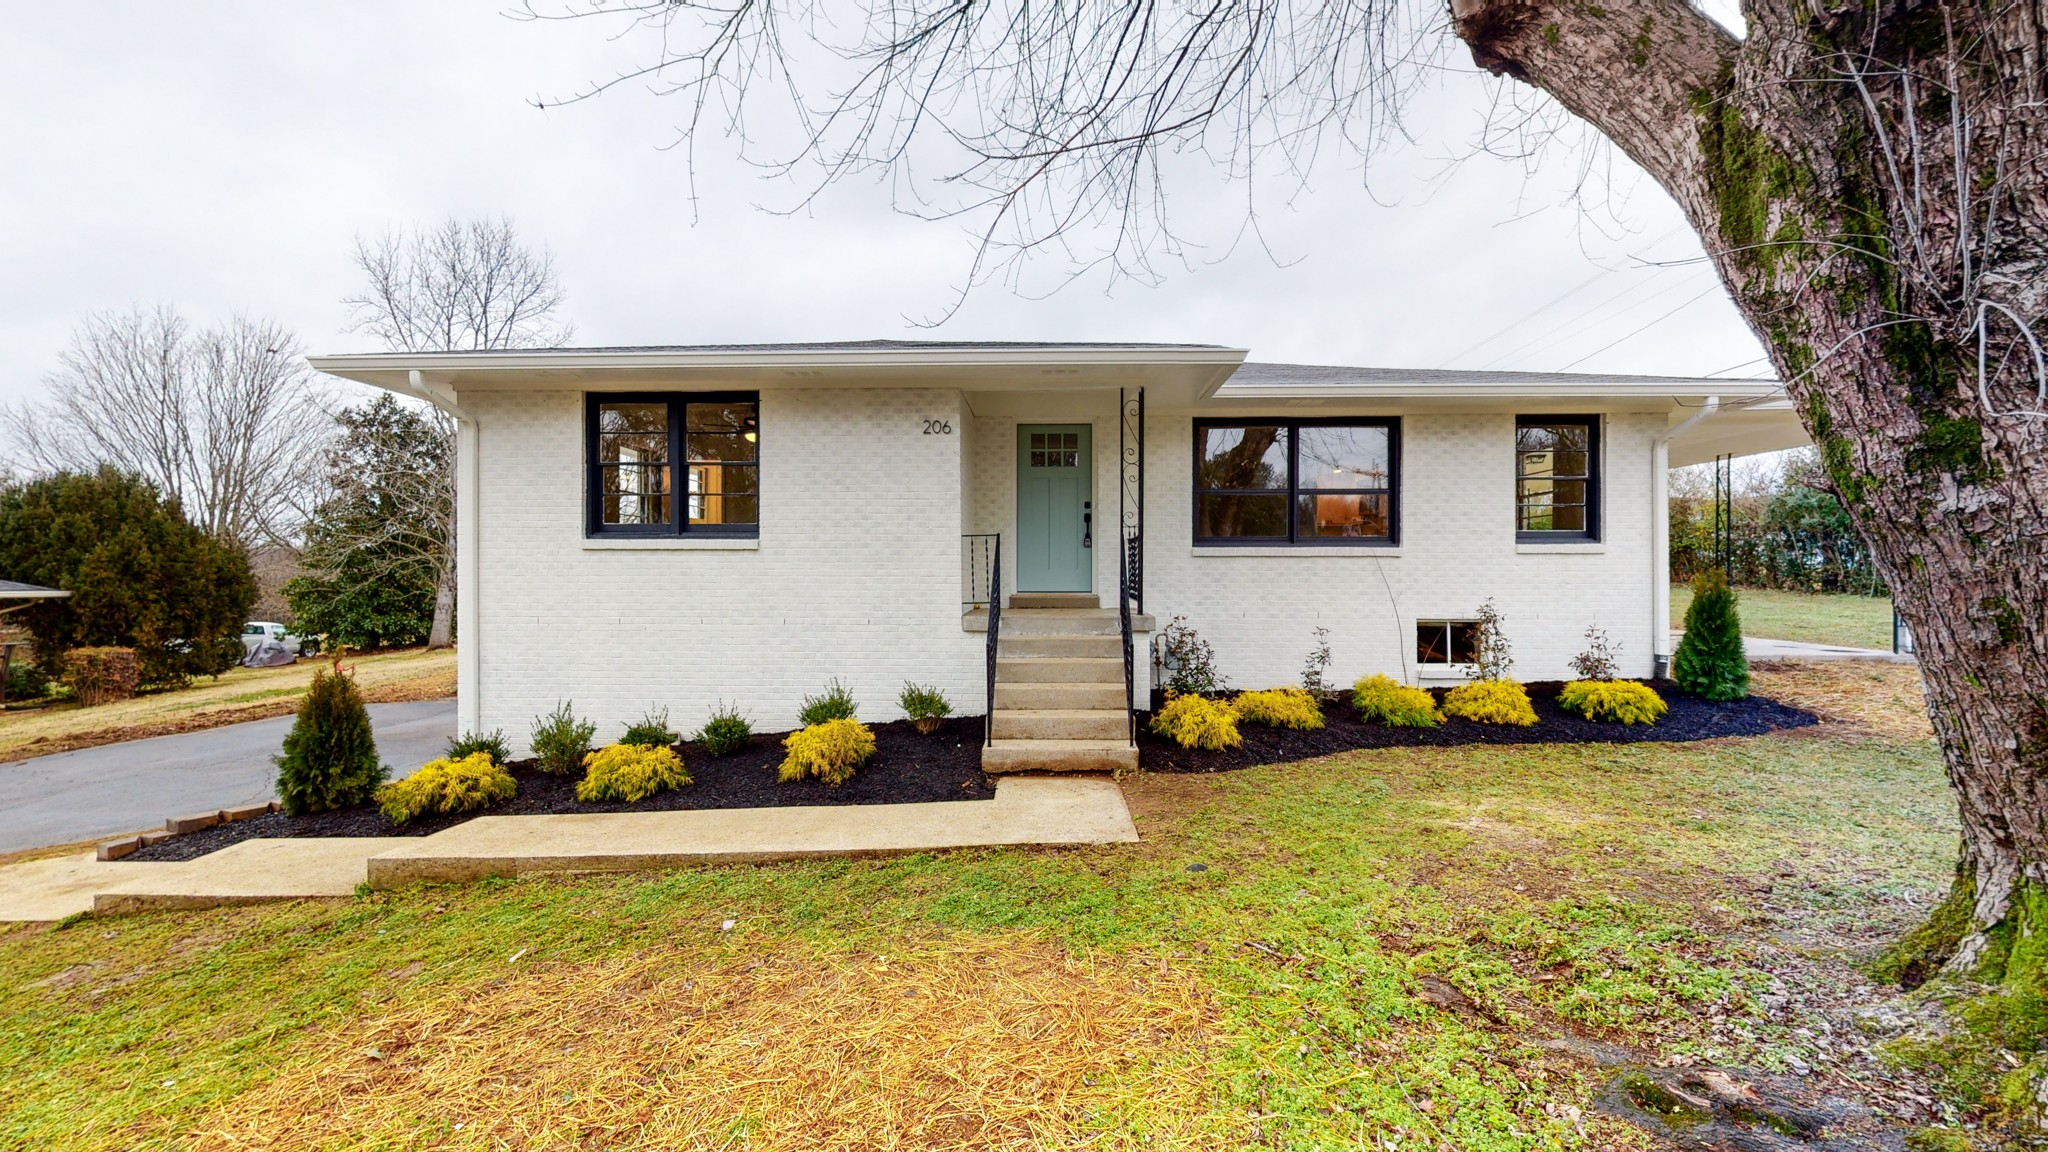 See this updated mid-century home in person! Full (unfinished) basement could easily make additional living, and with a beautiful .78 acre lot in a quiet little pocket of Columbia. Tastefully renovated with all new appliances, flooring, garage doors, bathrooms, lighting, kitchen, and landscaping.